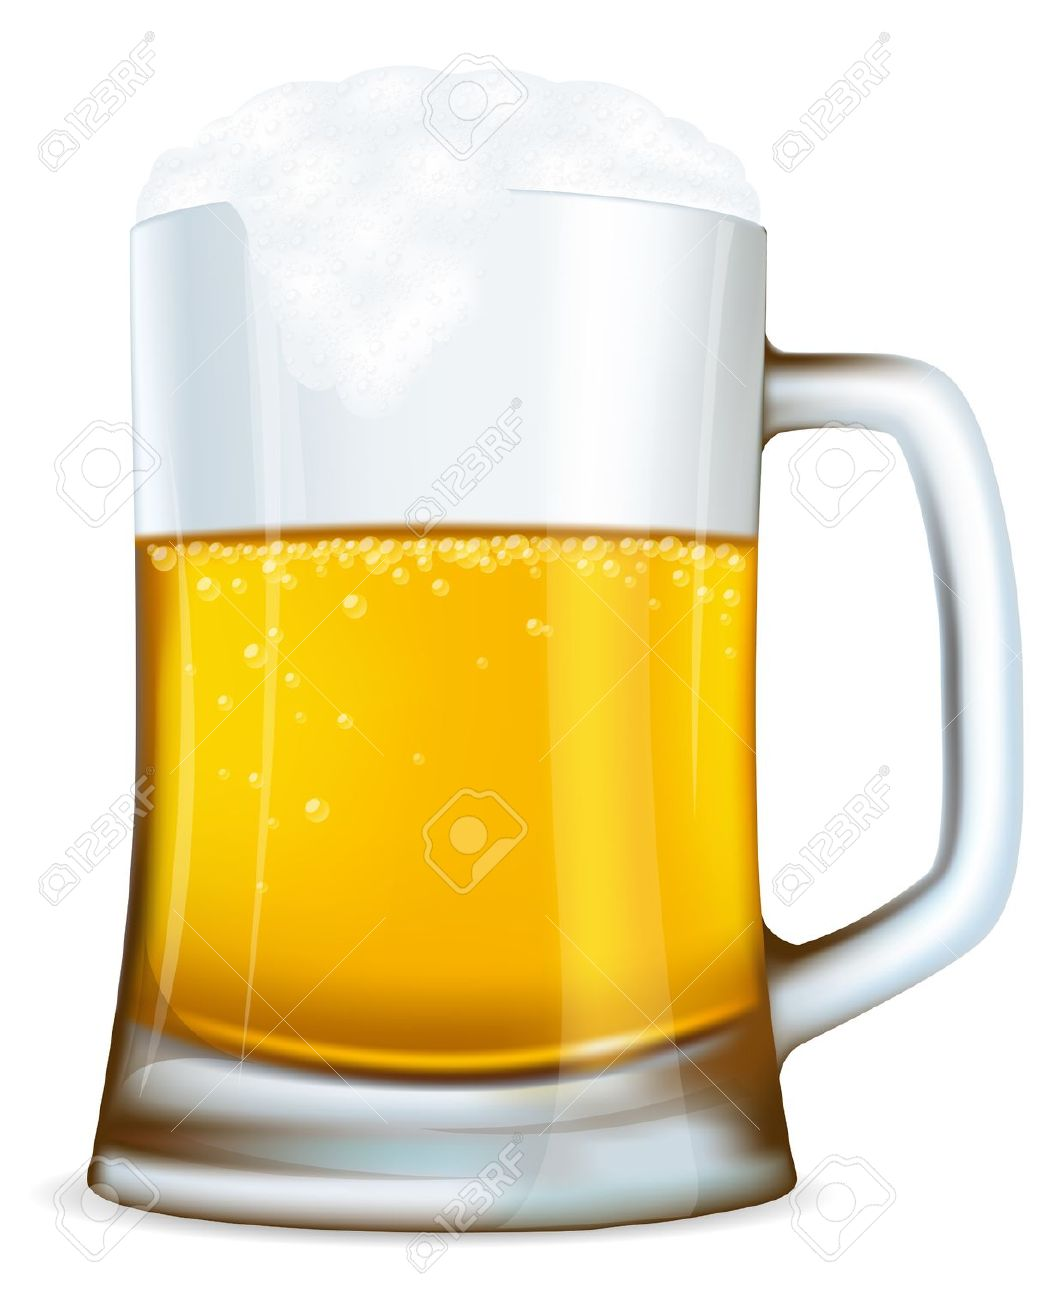 24,383 Mug Of Beer Stock Vector Illustration And Royalty Free Mug.